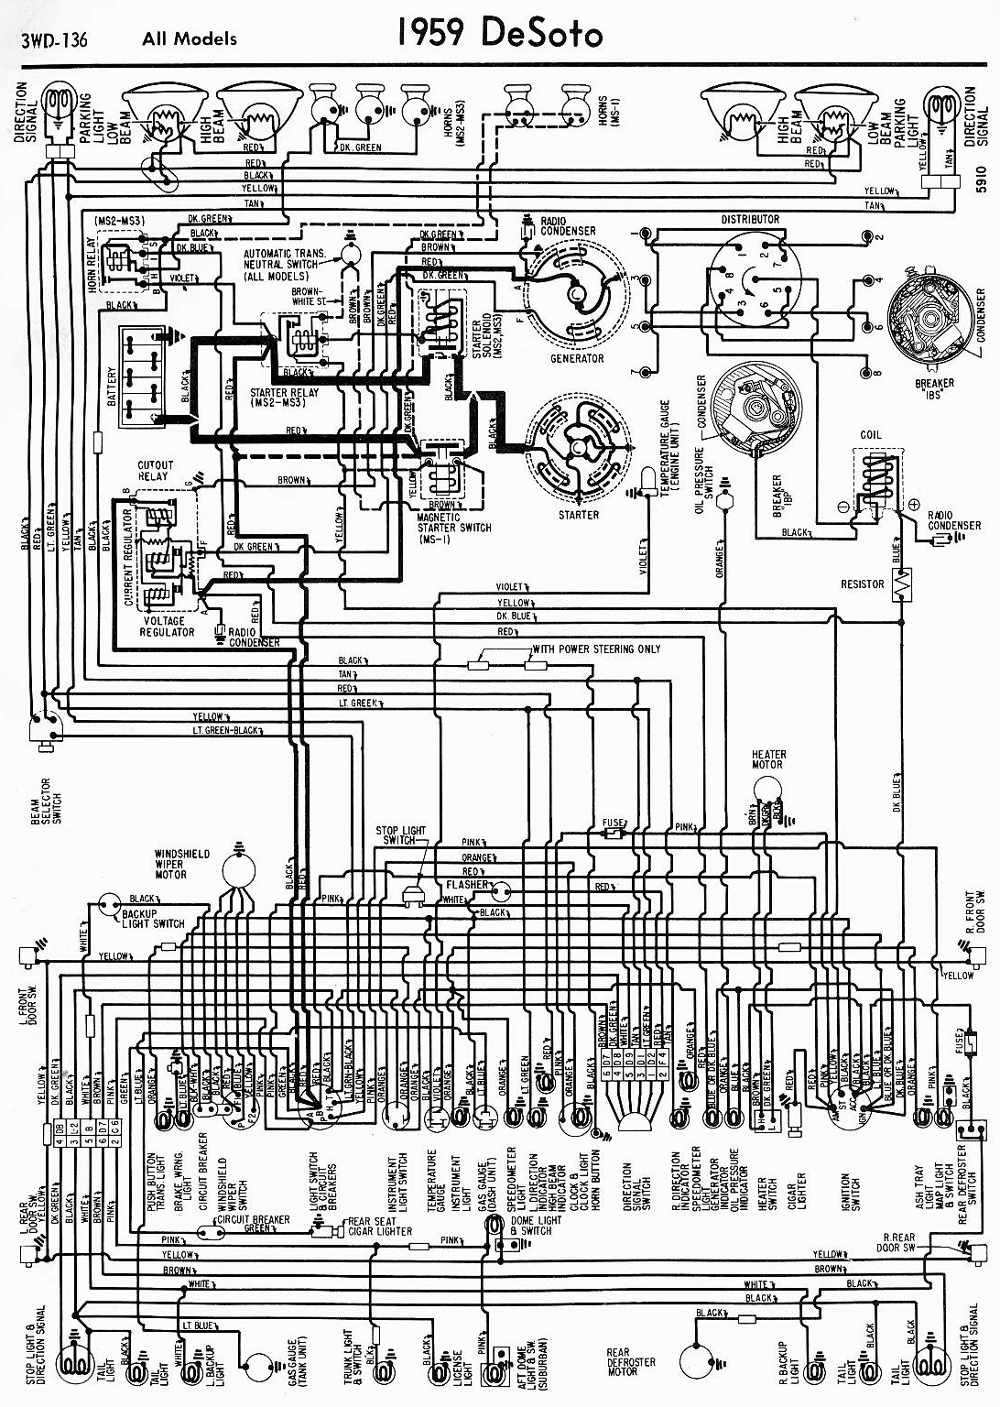 hight resolution of 1949 desoto wiring diagrams wiring diagrams wiring diagrams of 1959 desoto all models t 1508403749 1949 desoto wiring diagrams